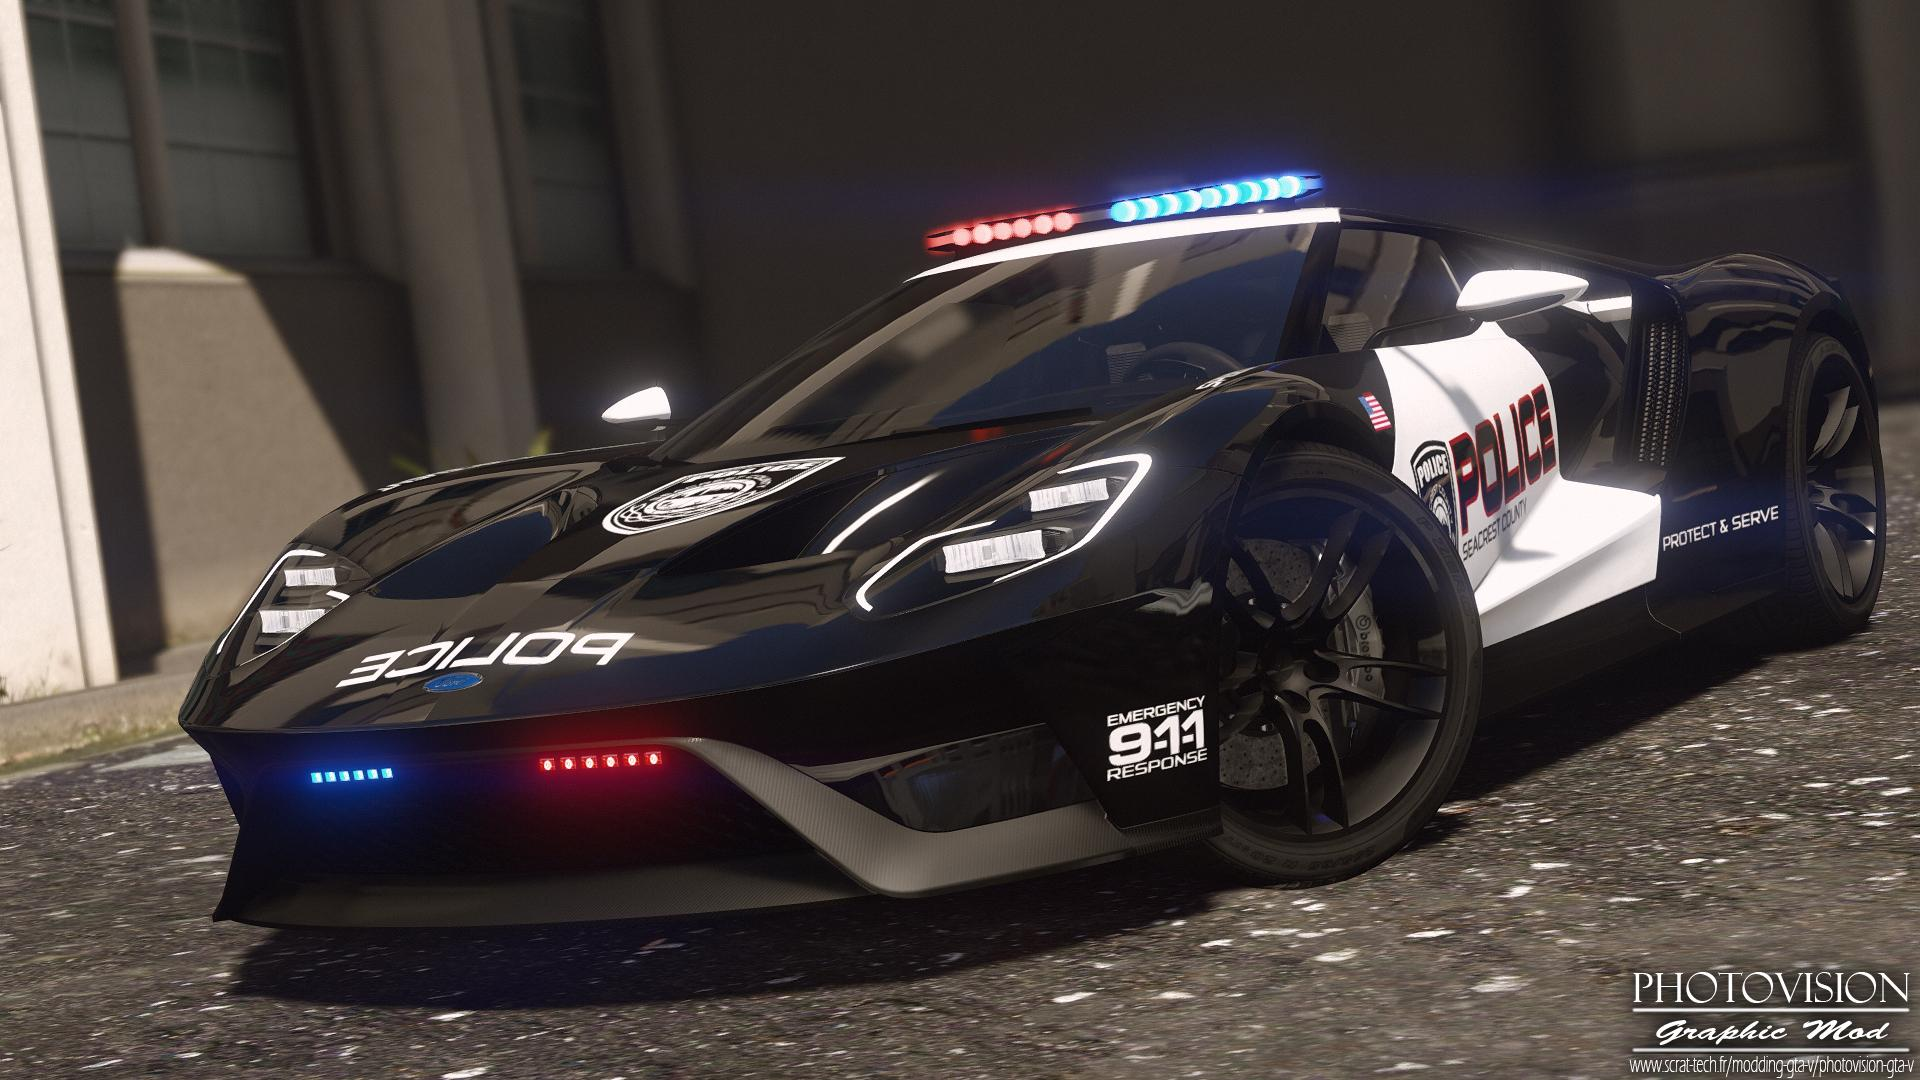 How To Add Cars In Nfs Hot Pursuit